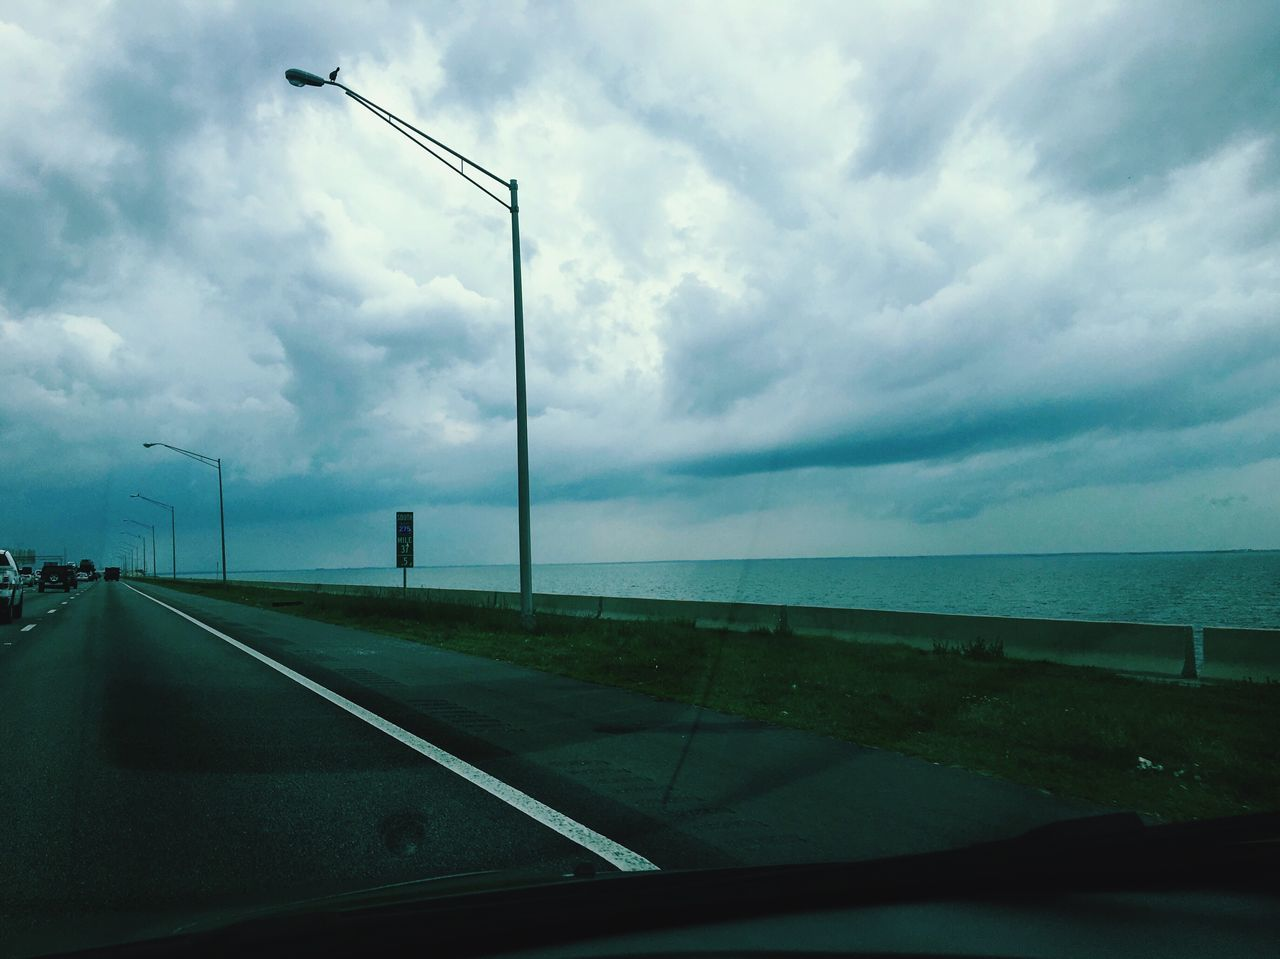 transportation, cloud - sky, sky, car, mode of transport, road, windshield, day, no people, water, sea, street light, car interior, nature, scenics, the way forward, outdoors, beauty in nature, horizon over water